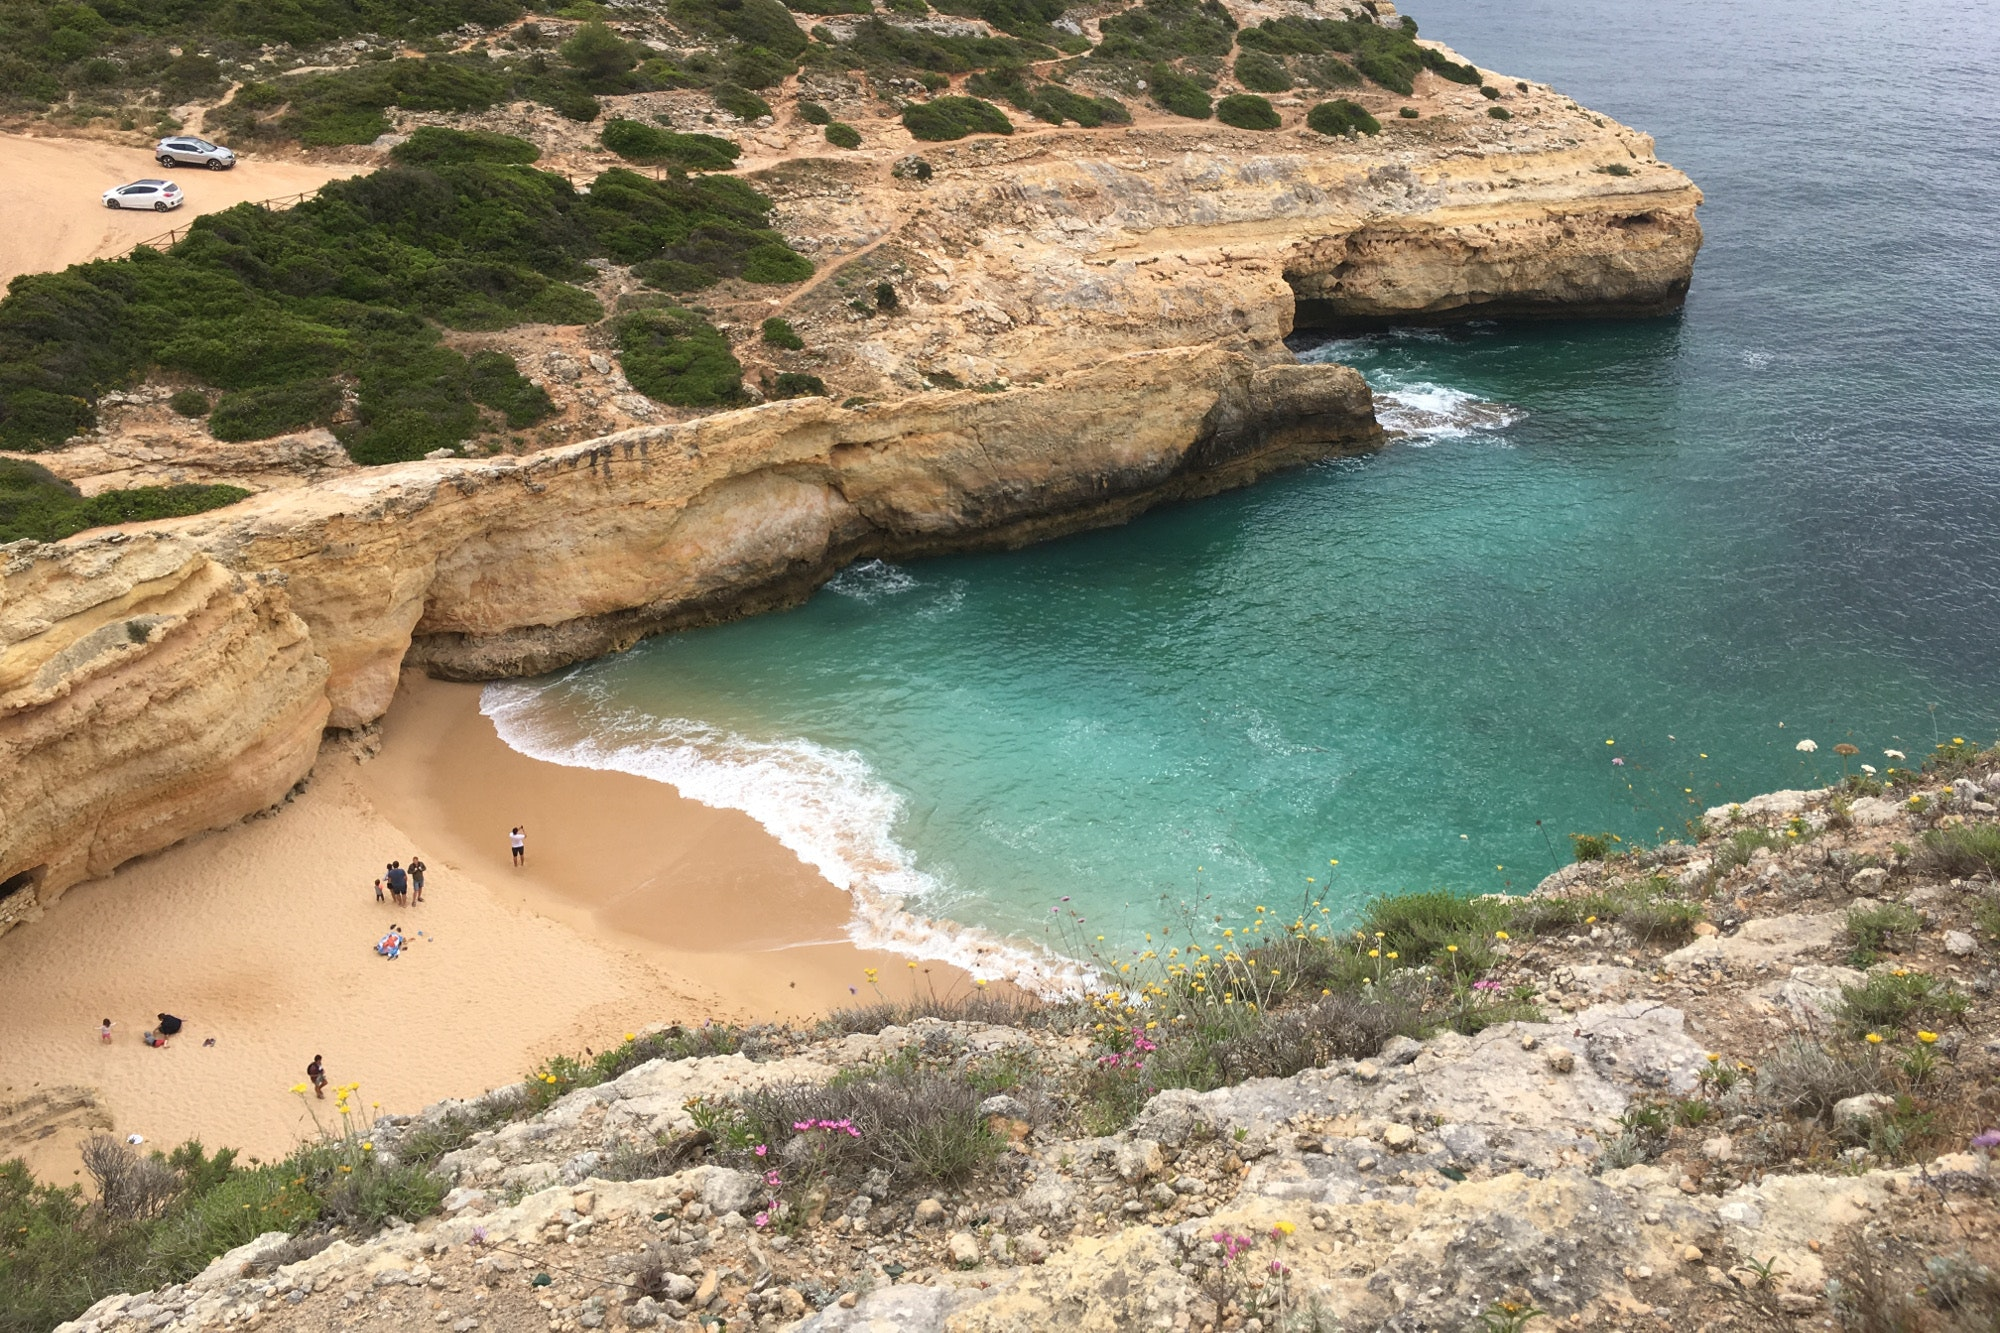 A secluded beach in Portugal